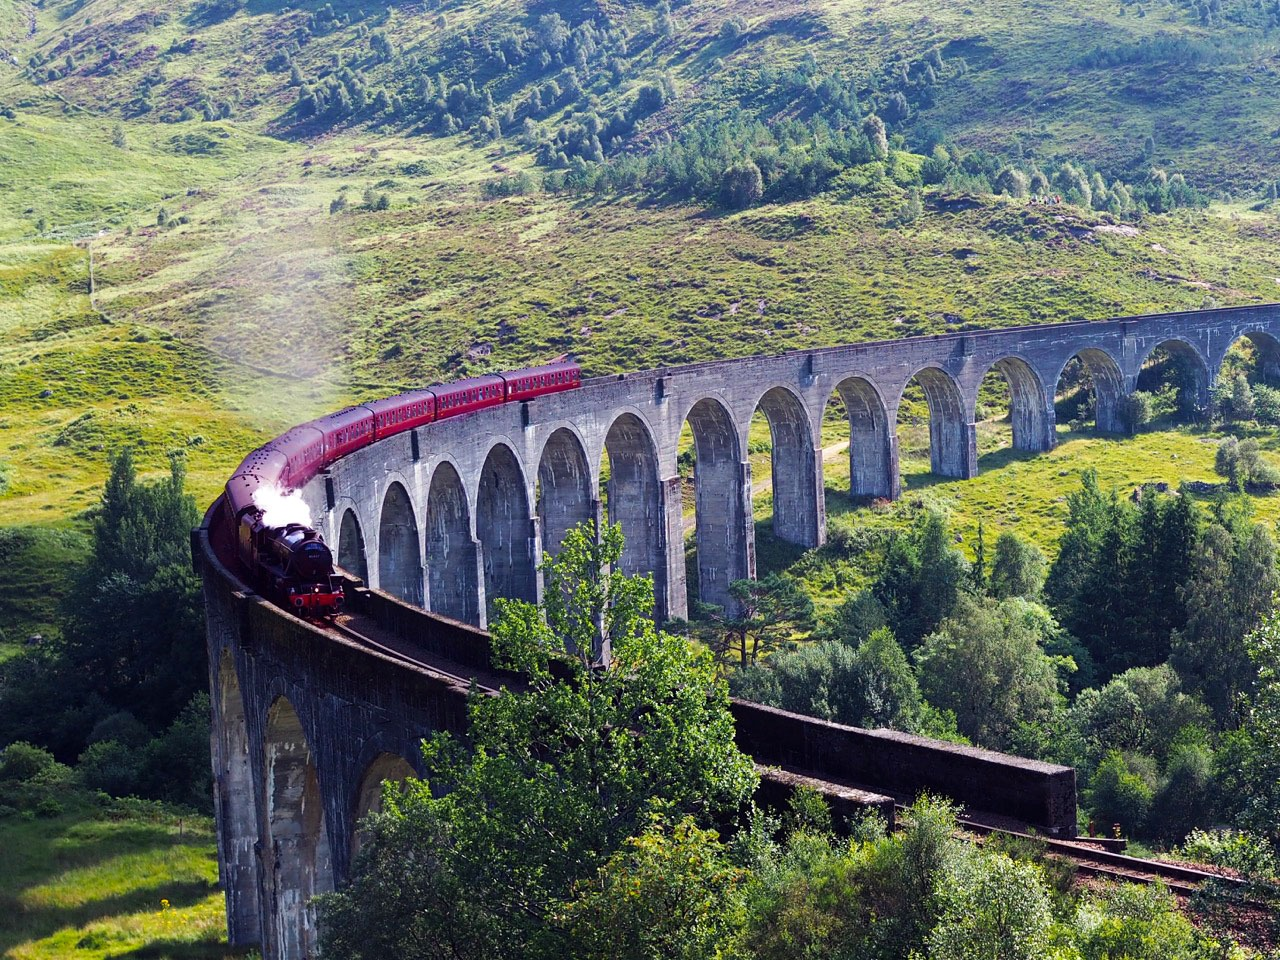 Harry Potter film locations